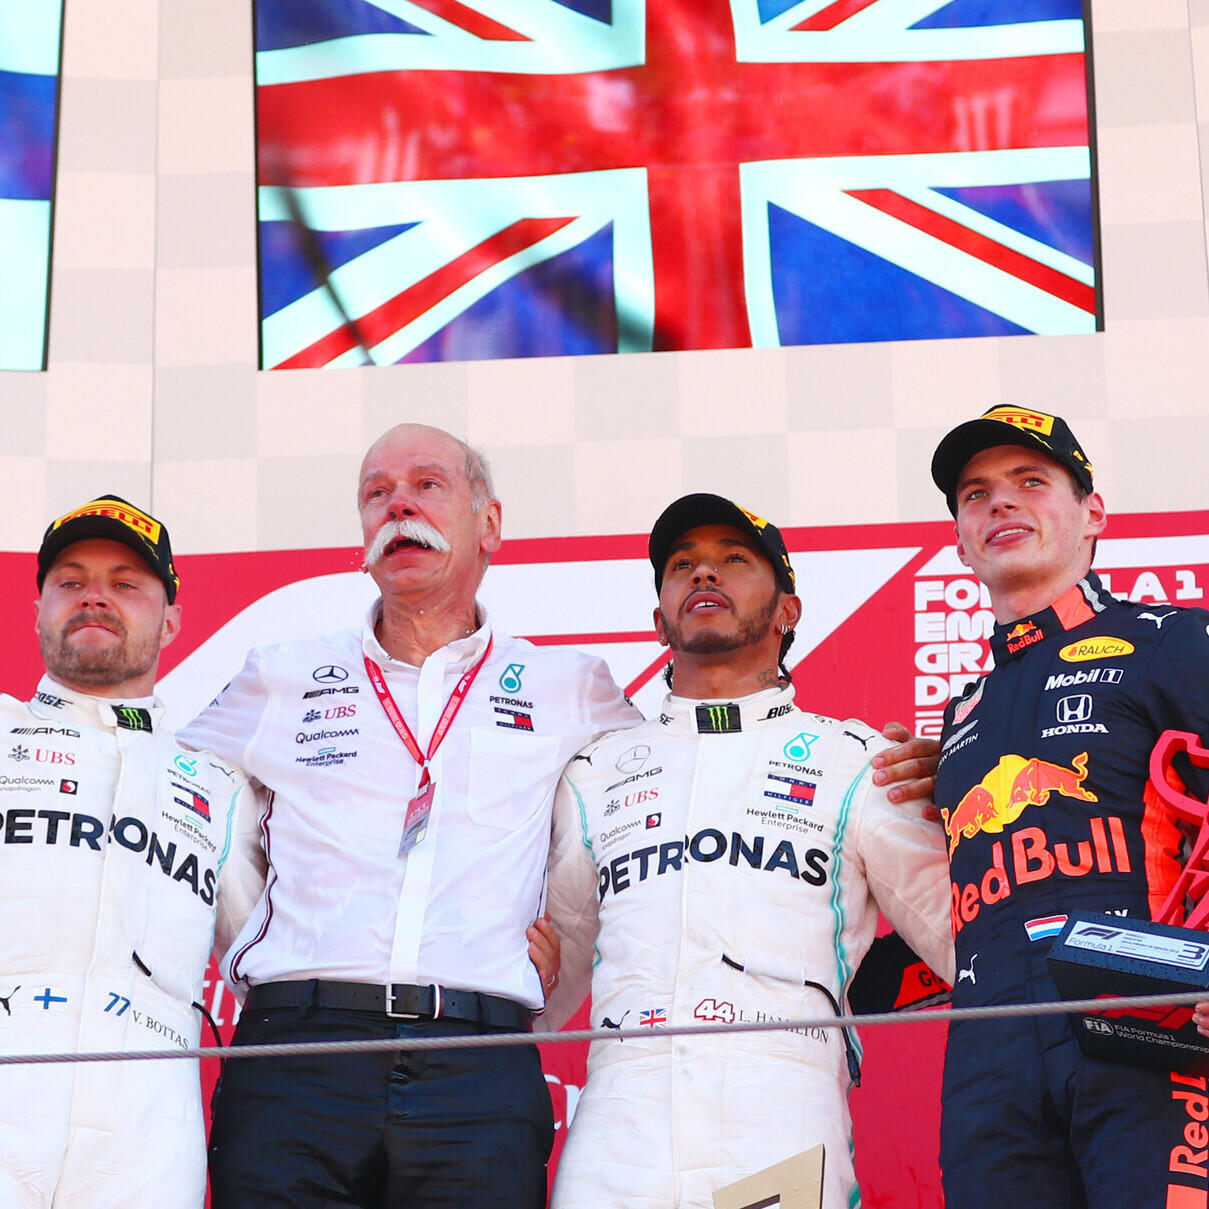 24: F1 Should Make Winning Prize Money Public